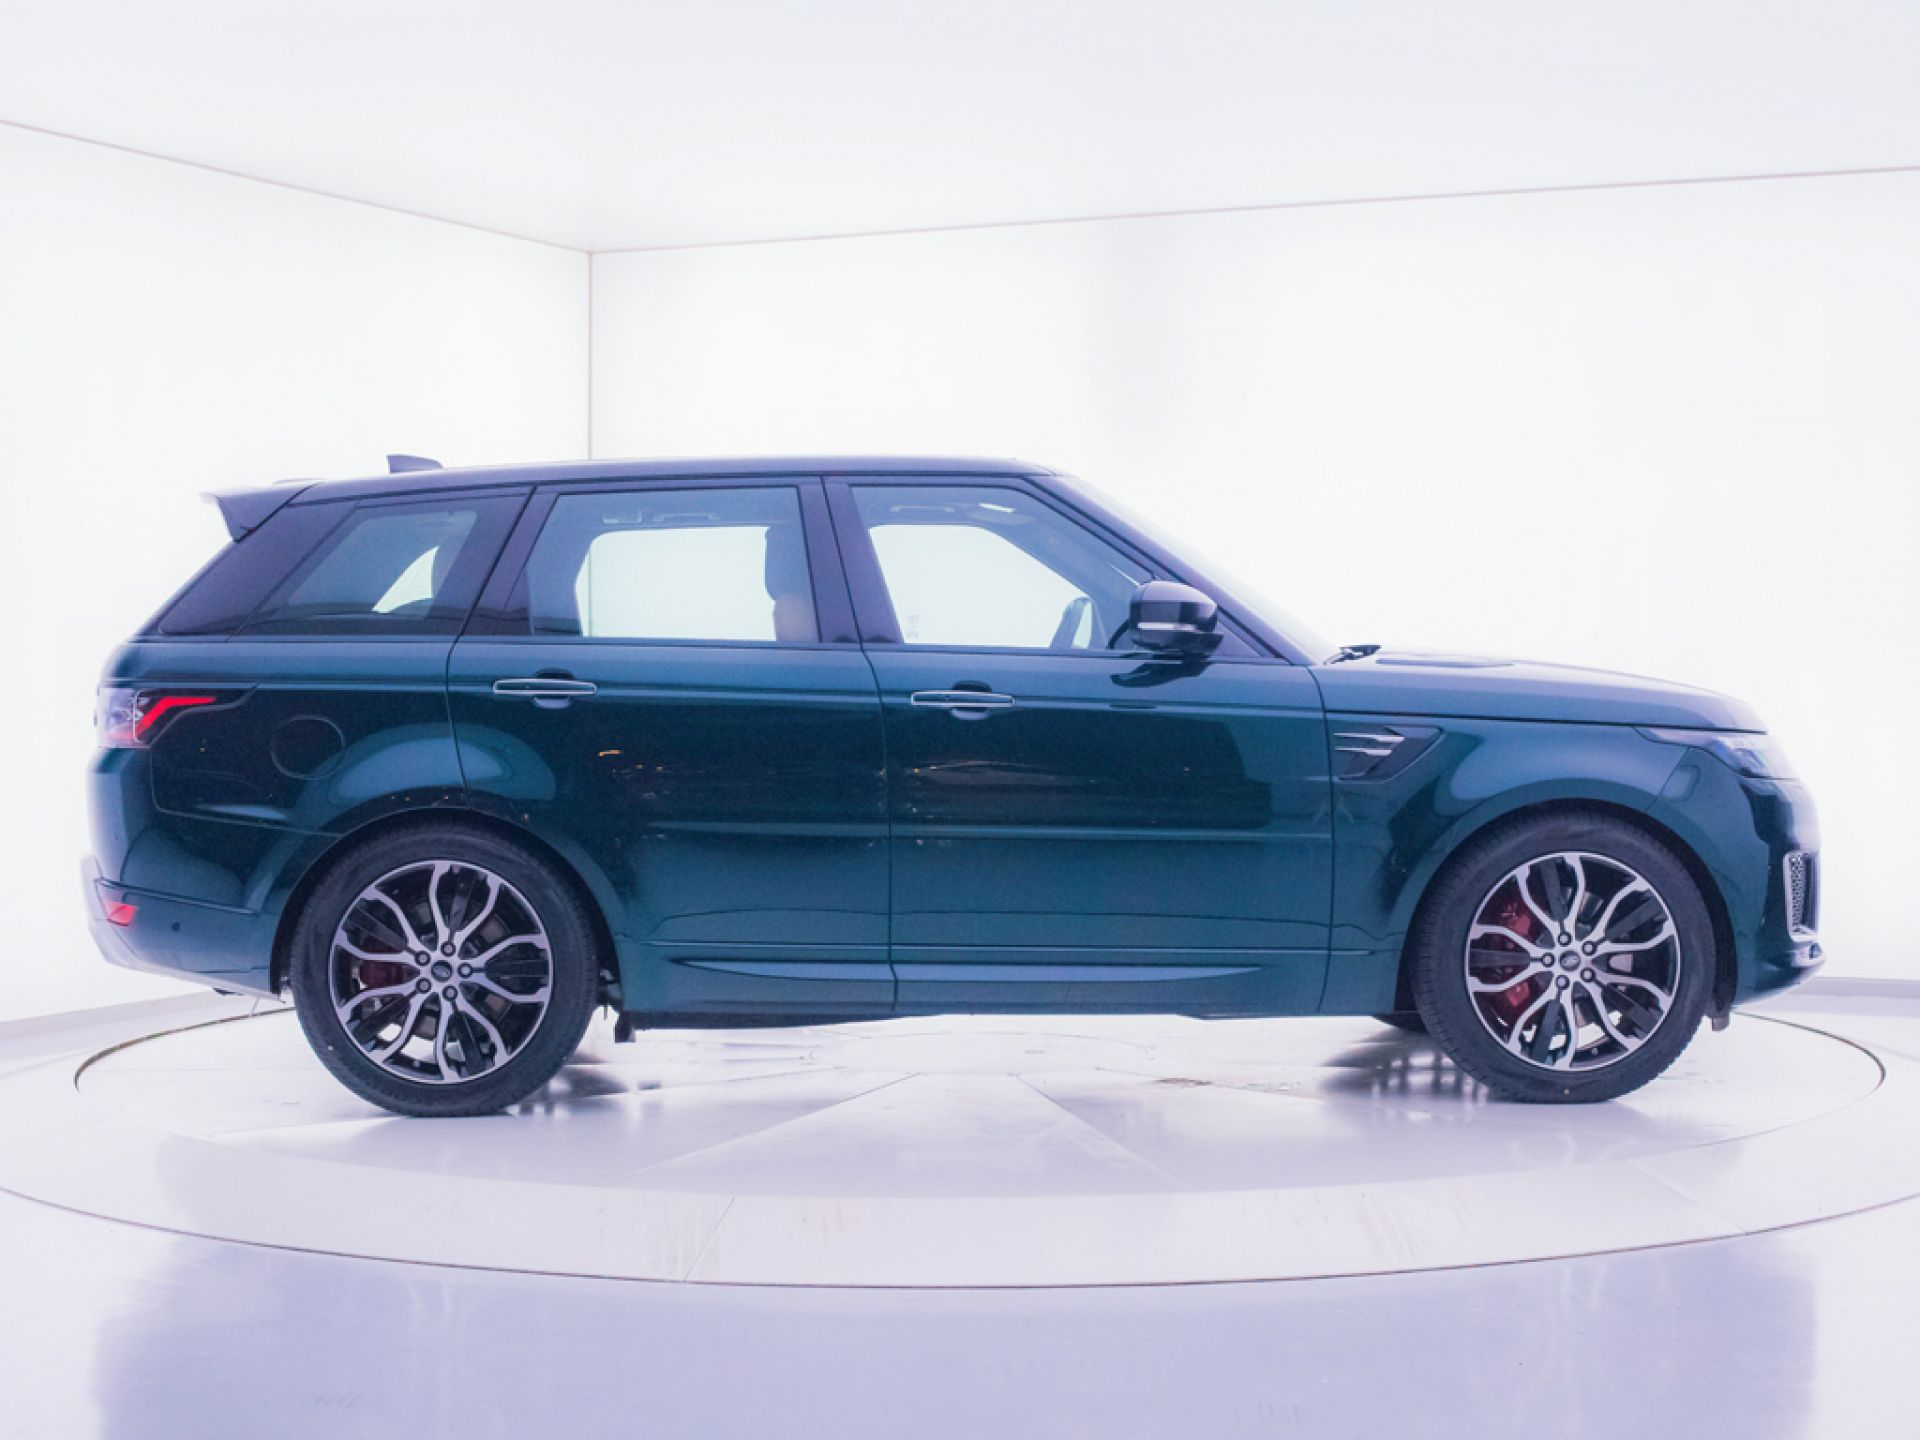 Land Rover Range Rover Sport 2.0 Si4 PHEV 297kW Autobiography Dynamic